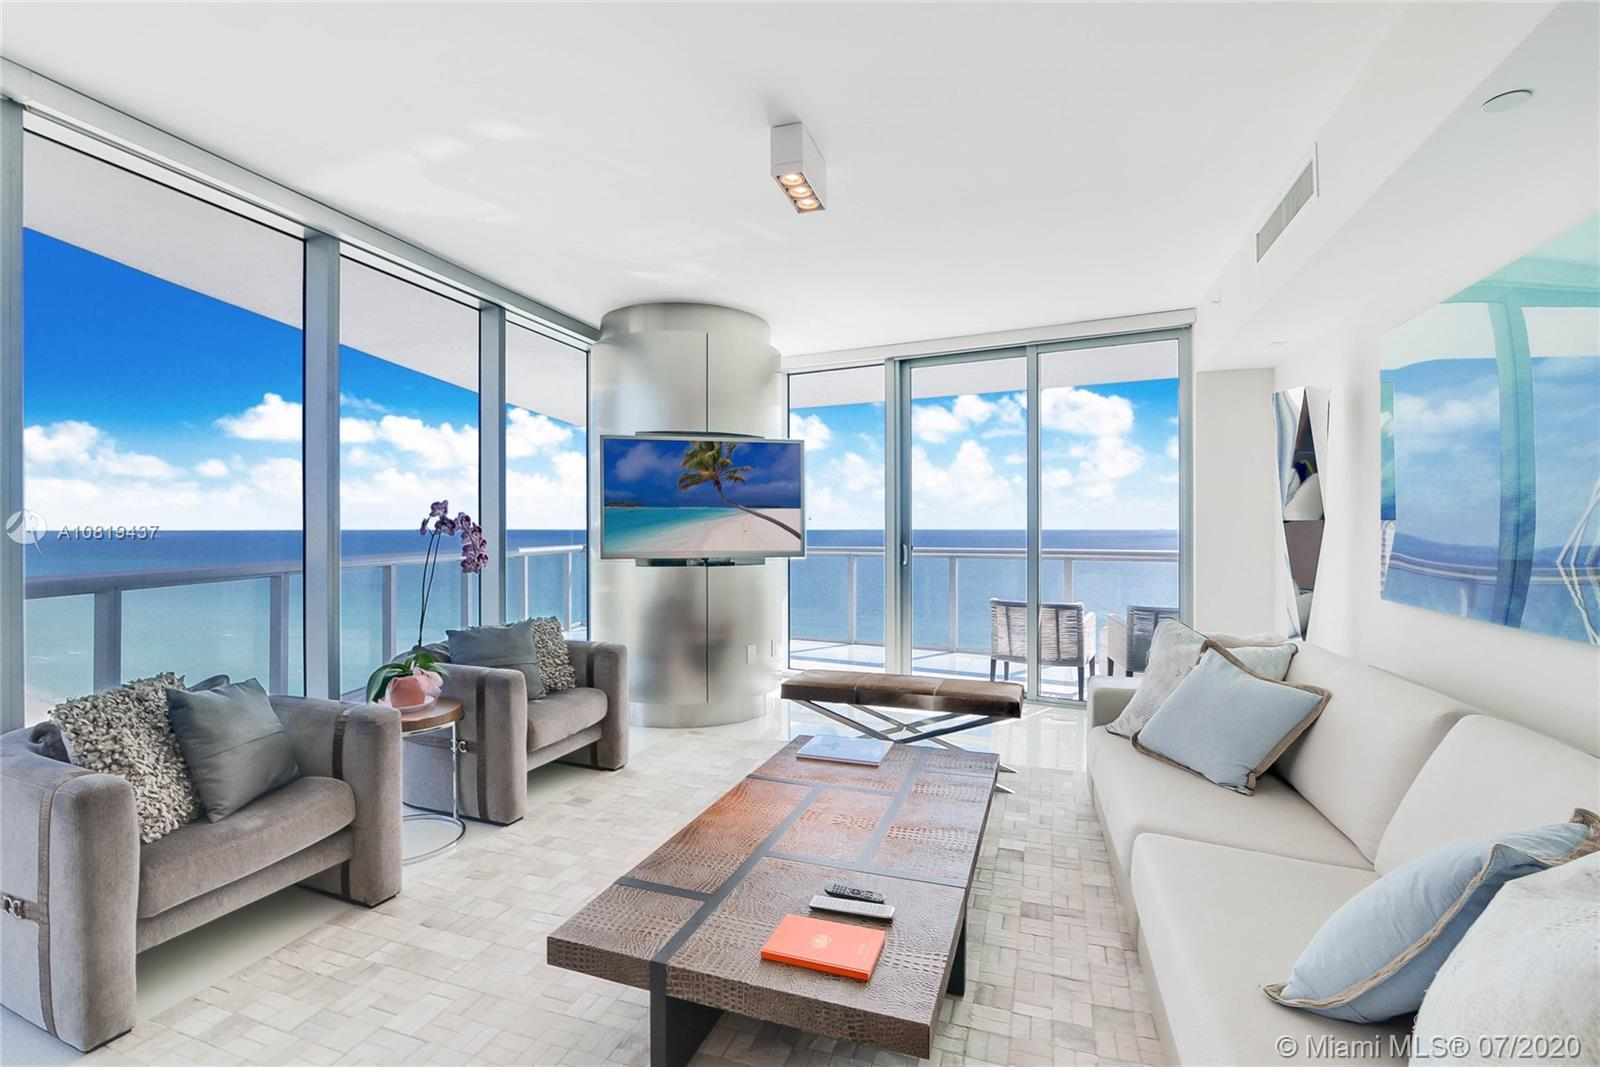 JADE BEACH 1908, (See Broker Bonus Remarks) REDUCED to $ 1,499,000 from $ 1,775,000.  Show this unit